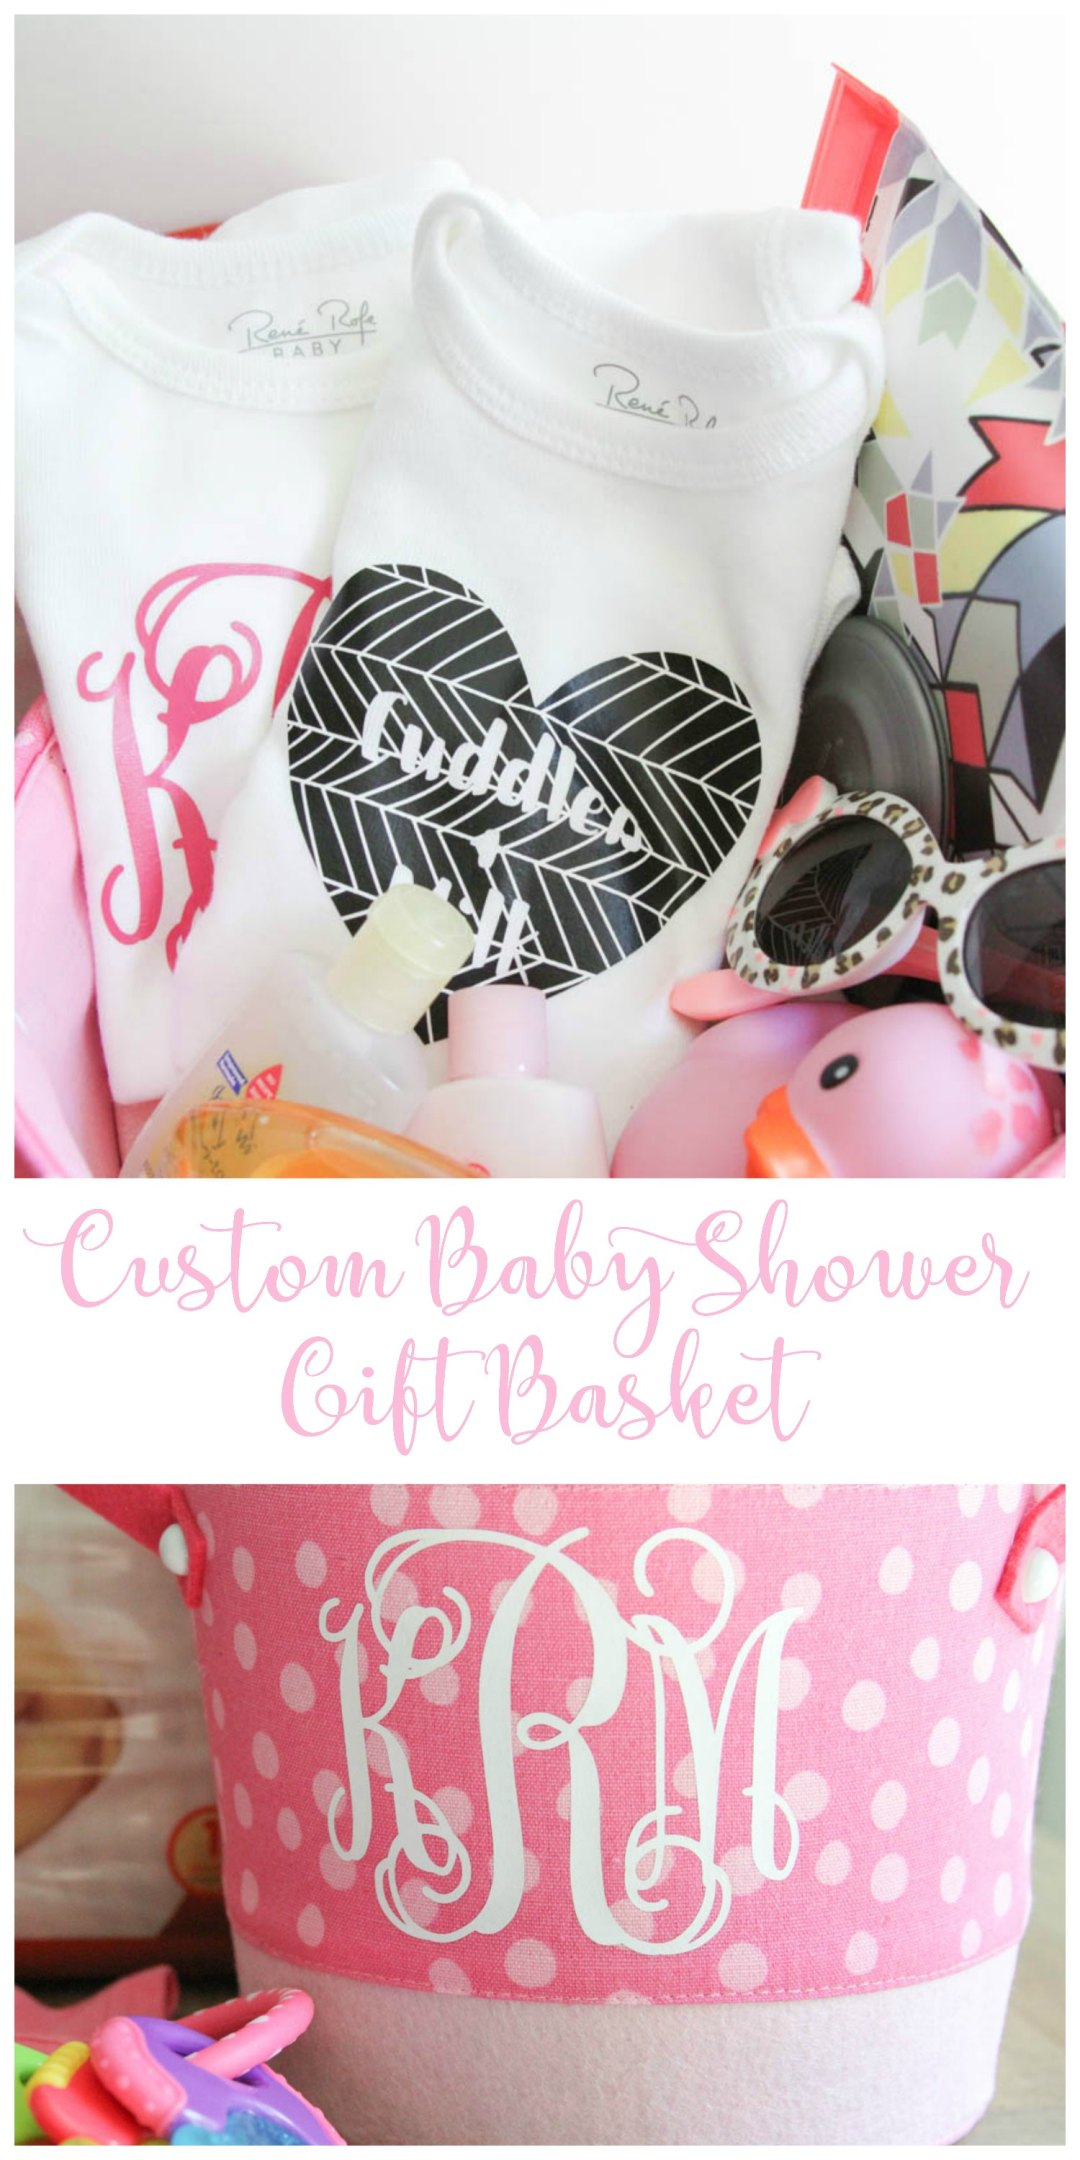 Everyday Party Magazine Custom Baby Shower Gift Basket #CricutMade #BabyShower #ThatsDarling #DIYGiftIdea